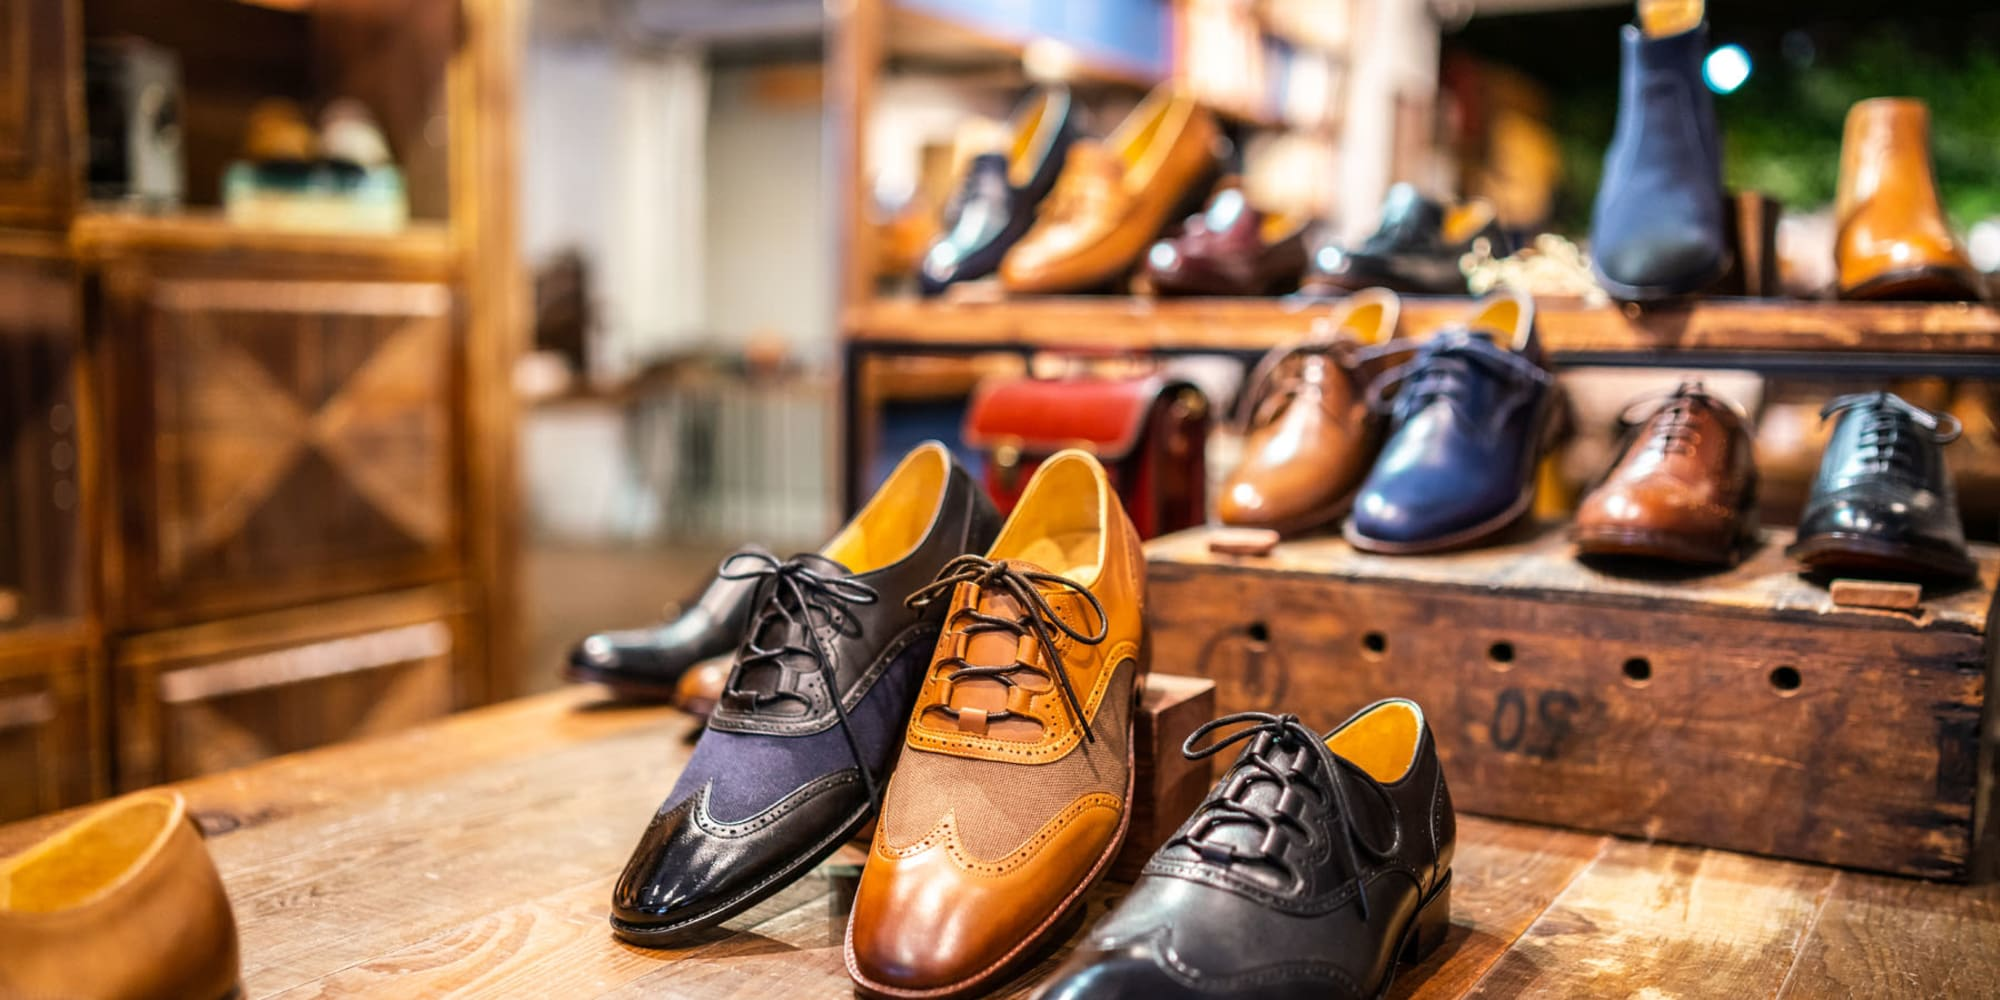 Men's shoes on display at a downtown shop near Mediterranean Village in West Hollywood, California